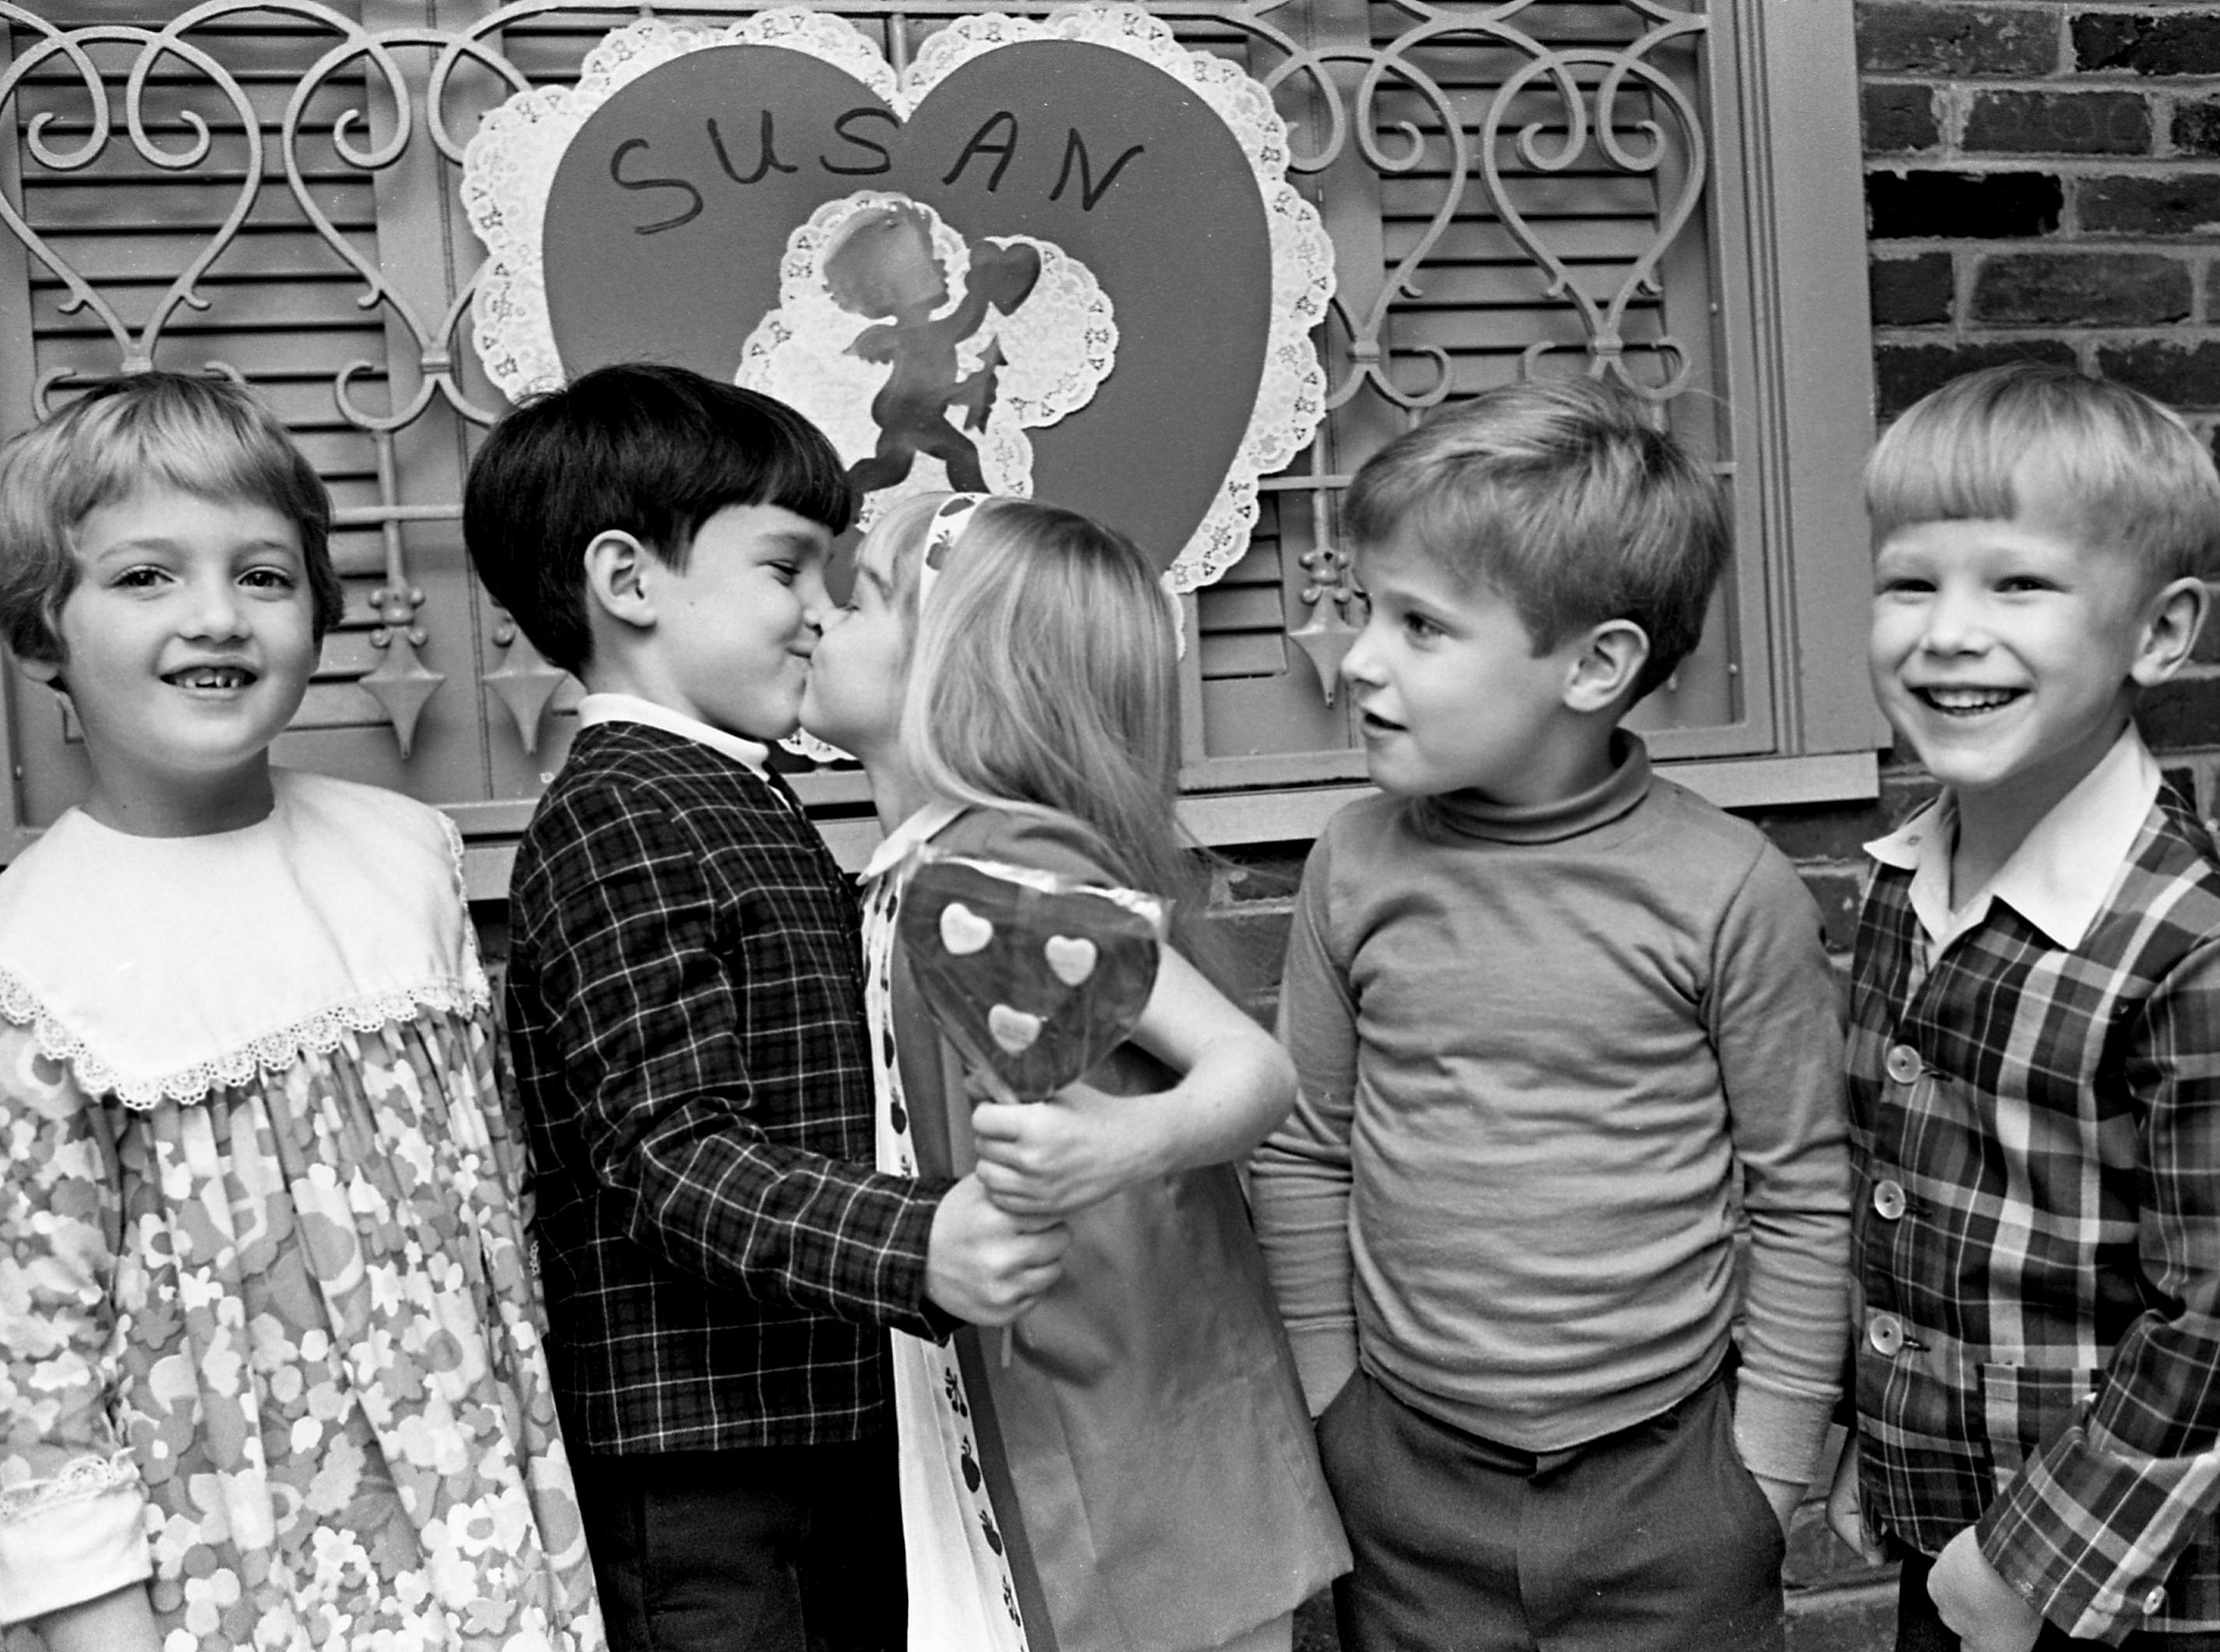 Susan Shreeve, center, was guest of honor at a Valentine party given by her mother, Mrs. George Shreeve, at the Seven Hills Club on Feb. 8, 1968. Susan is receiving a valentine kiss and gift from Tim Werthan, second from left, as Joan Richard, left, Taft Garrett and Johnny Mills look on.